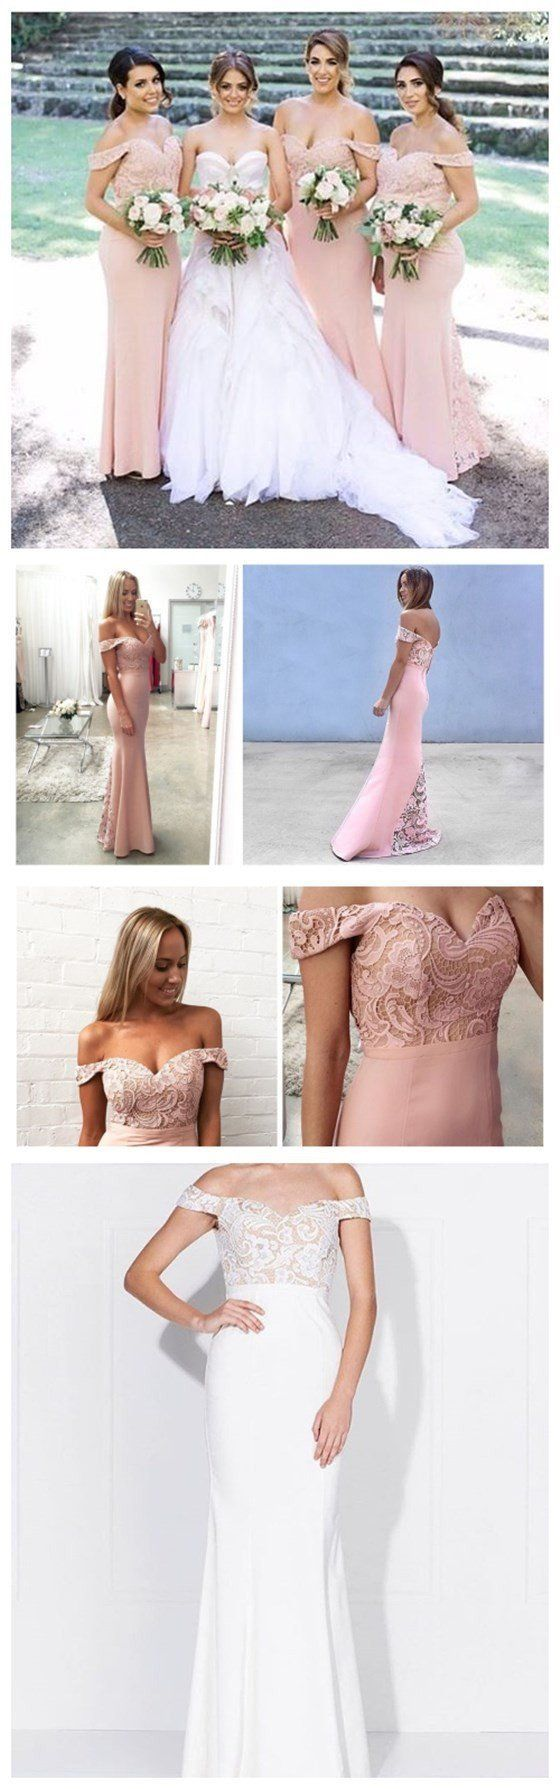 Junior Pretty Blush Pink Lace Off Shoulder Sweet Heart Mermaid Floor-Length Bridesmaid Dresses, WG55 Junior Pretty Blush Pink Lace Off Shoulder Sweet Heart Mermaid Floor-Length Bridesmaid Dresses, WG55